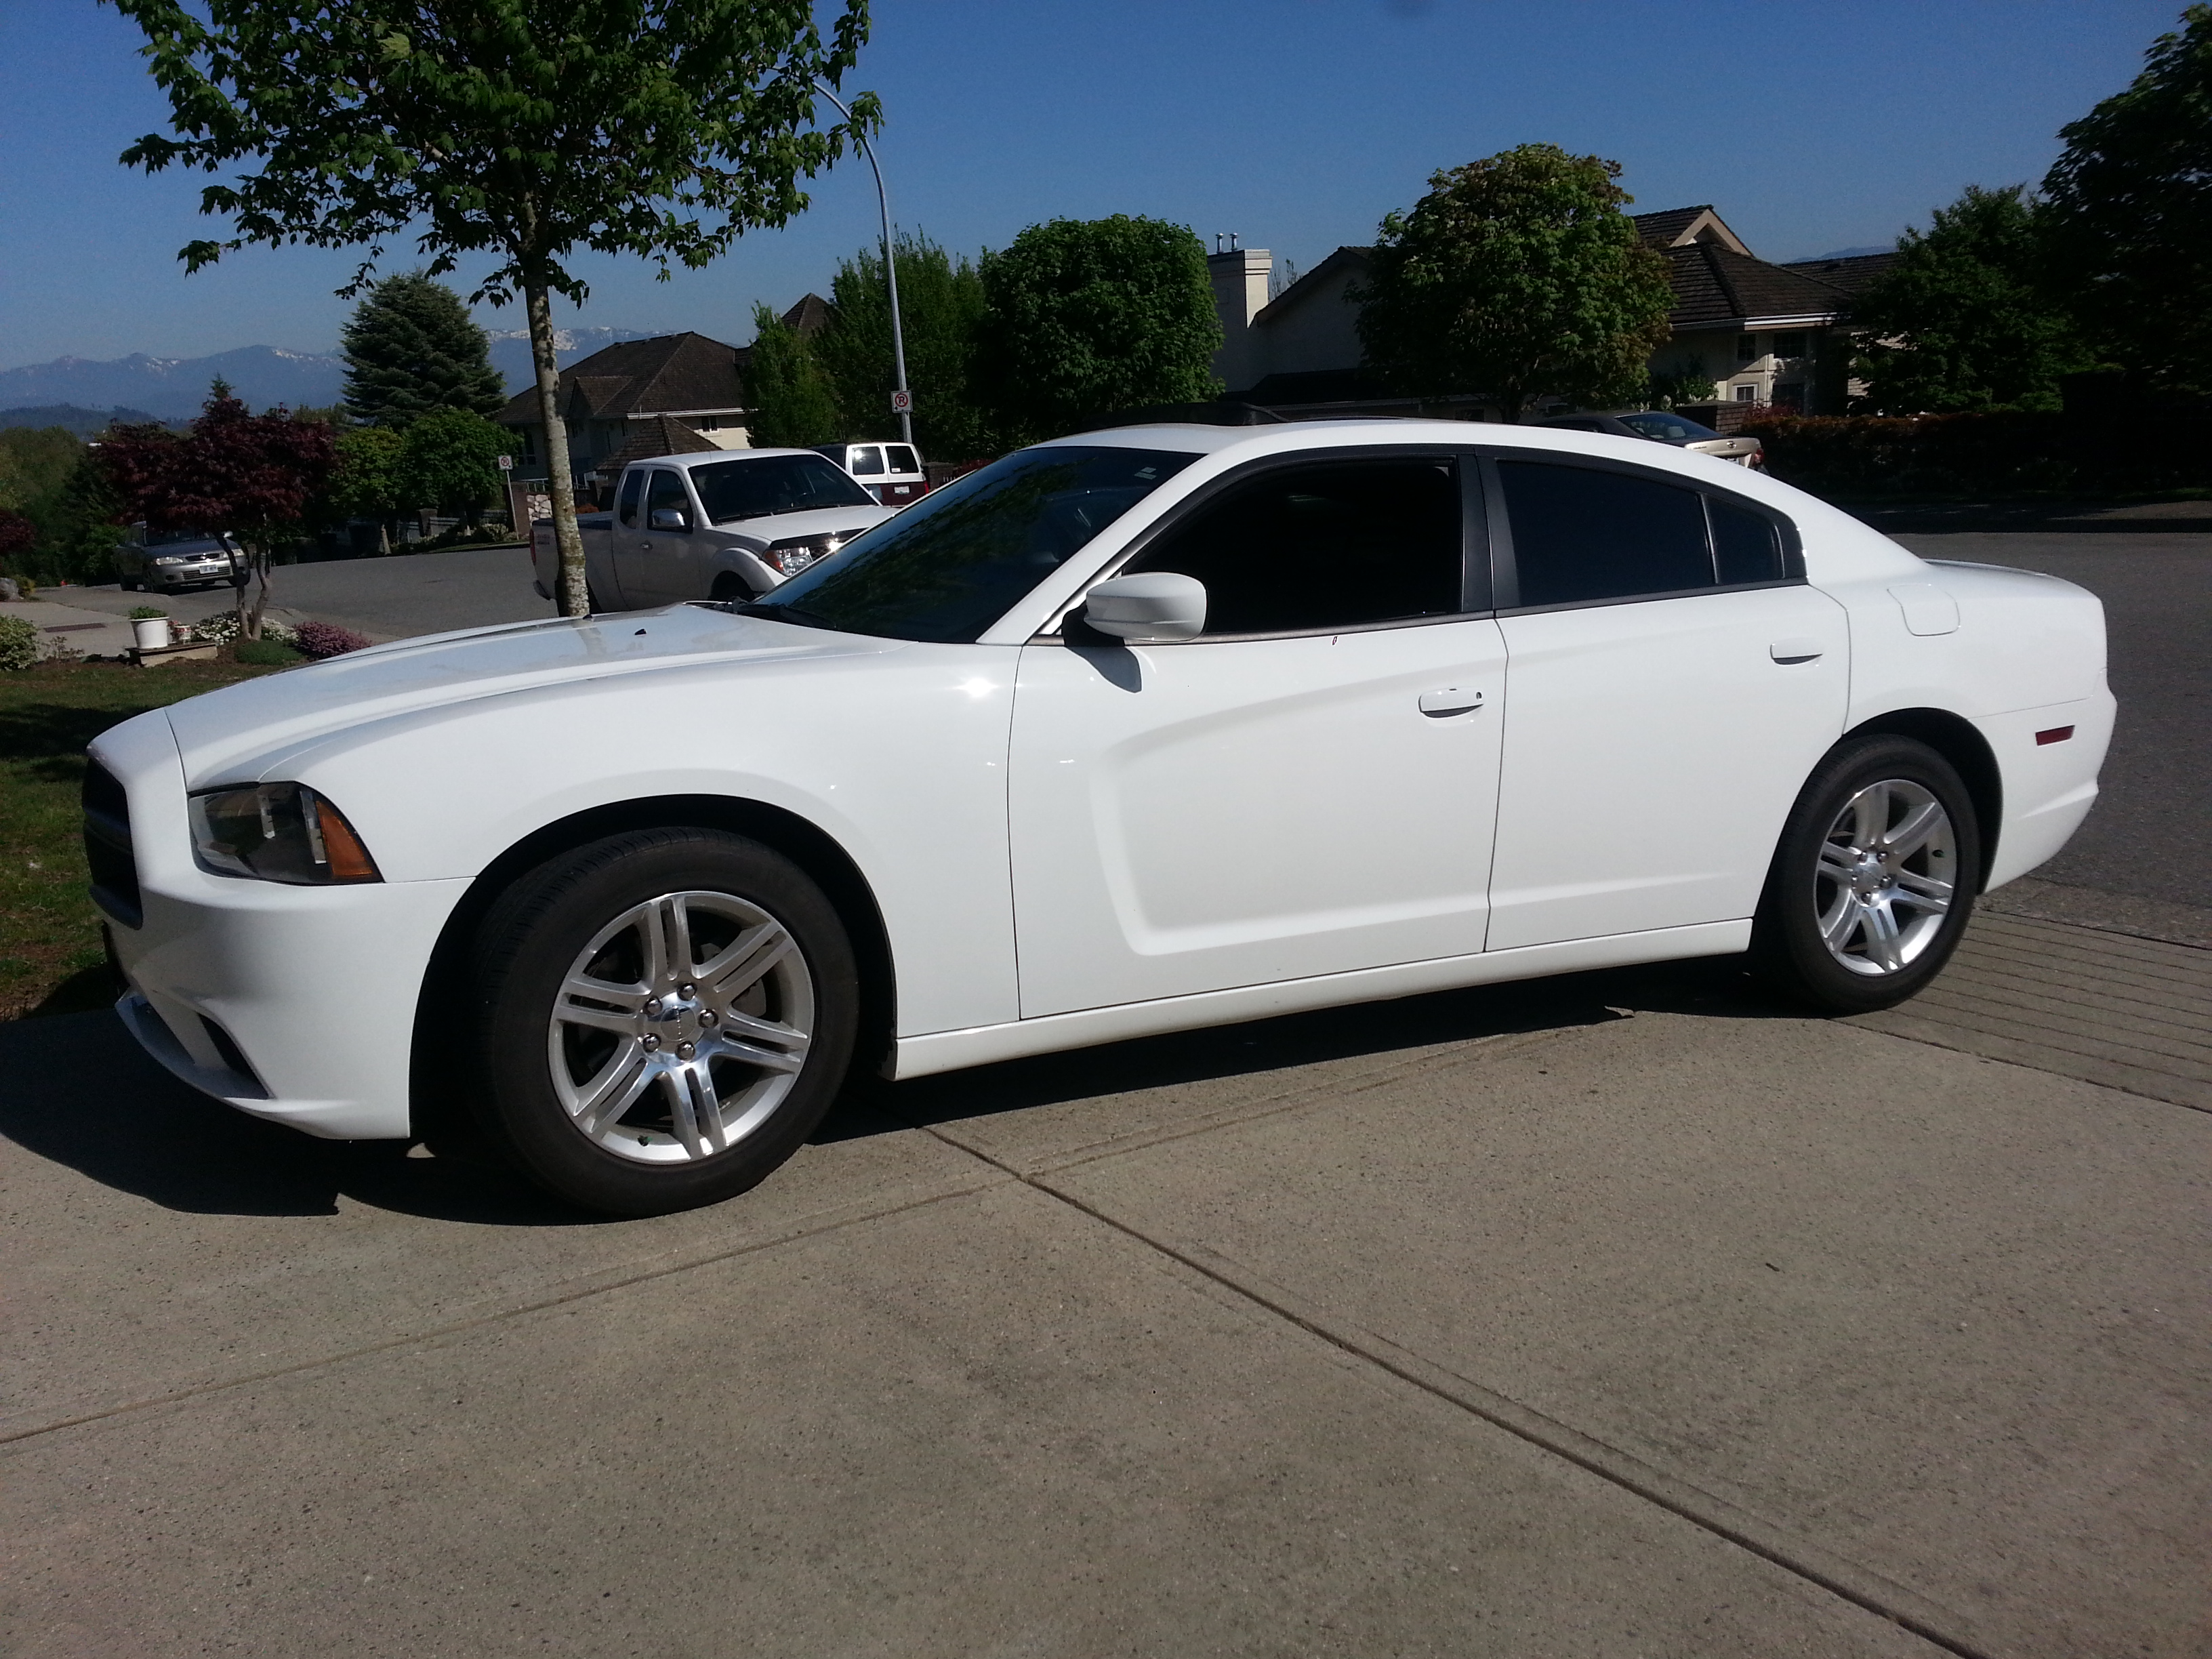 fab_pun 2011 Dodge Charger